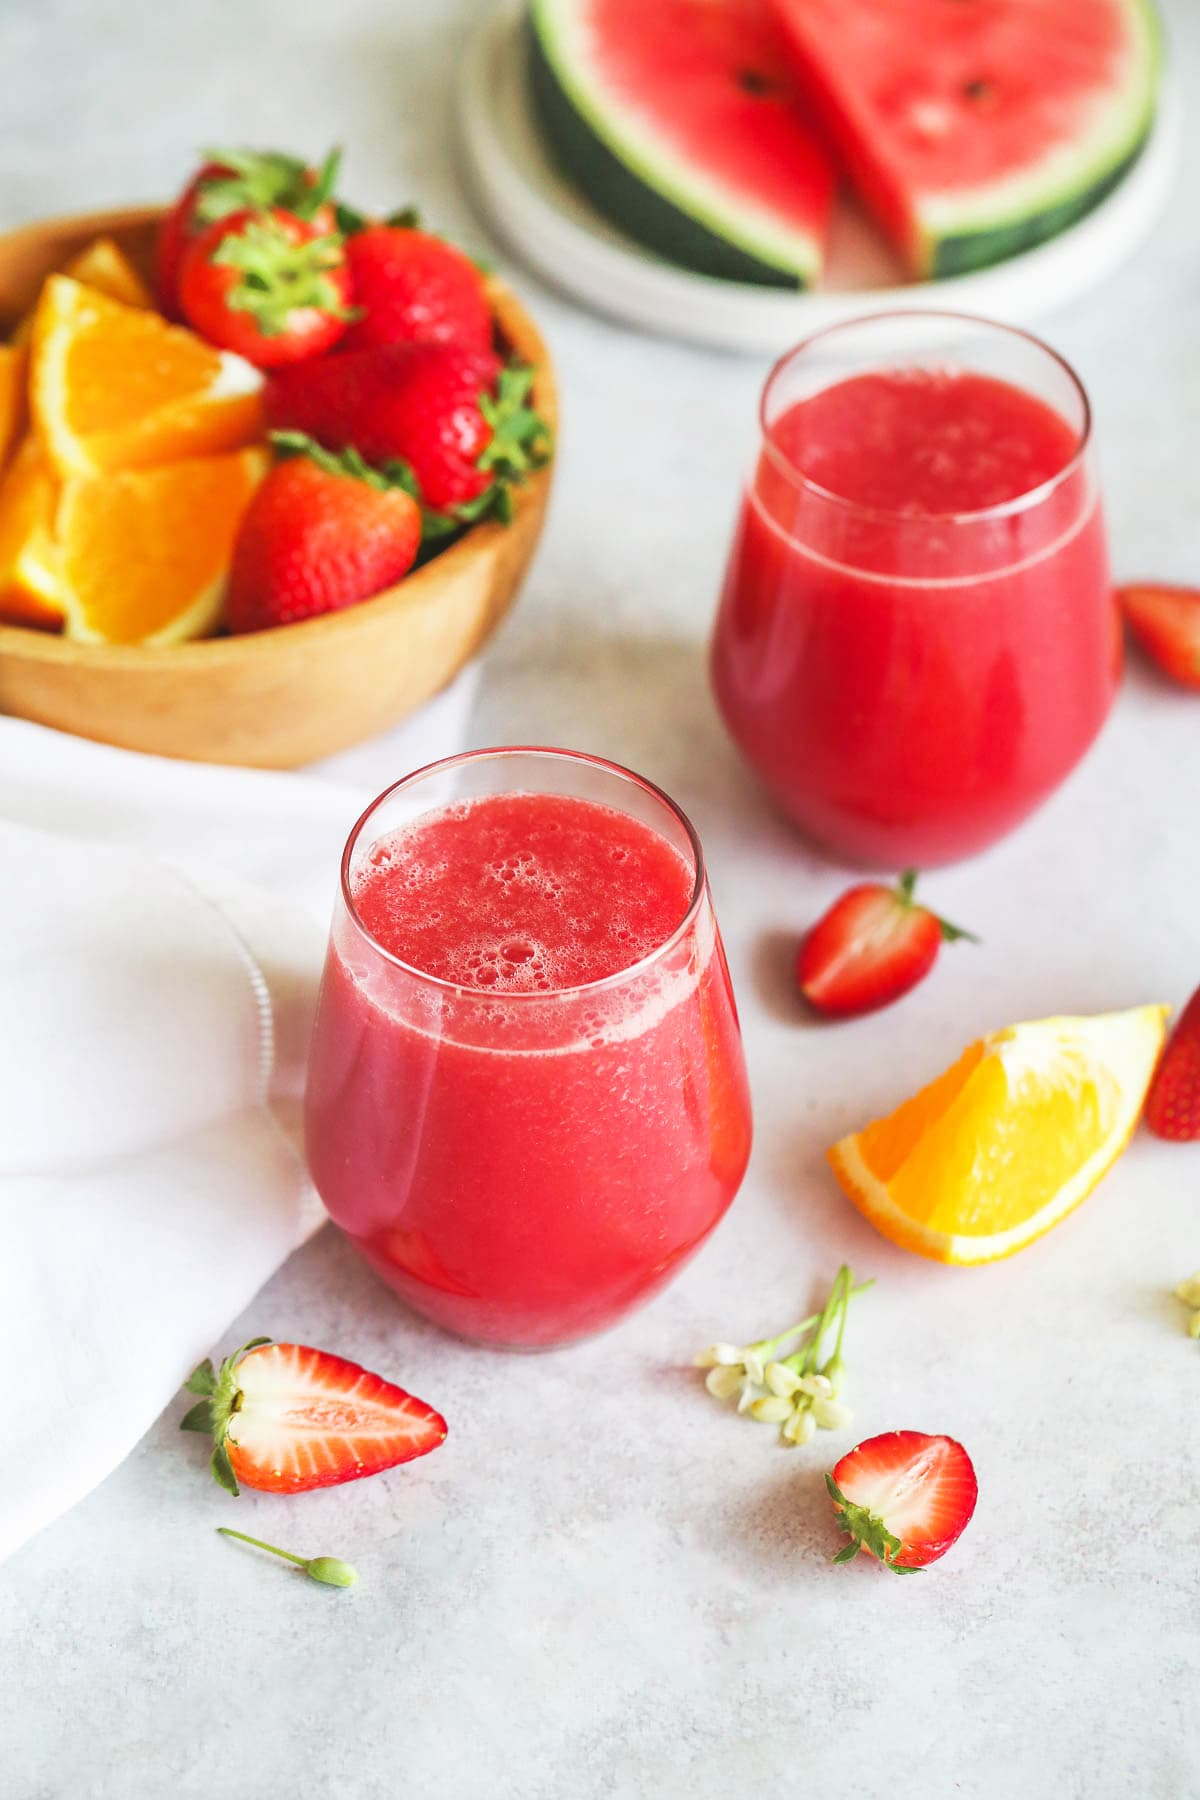 Strawberry Watermelon Smoothie in 2 glasses, and a bowl of fresh strawberries, orange, and watermelon slices.